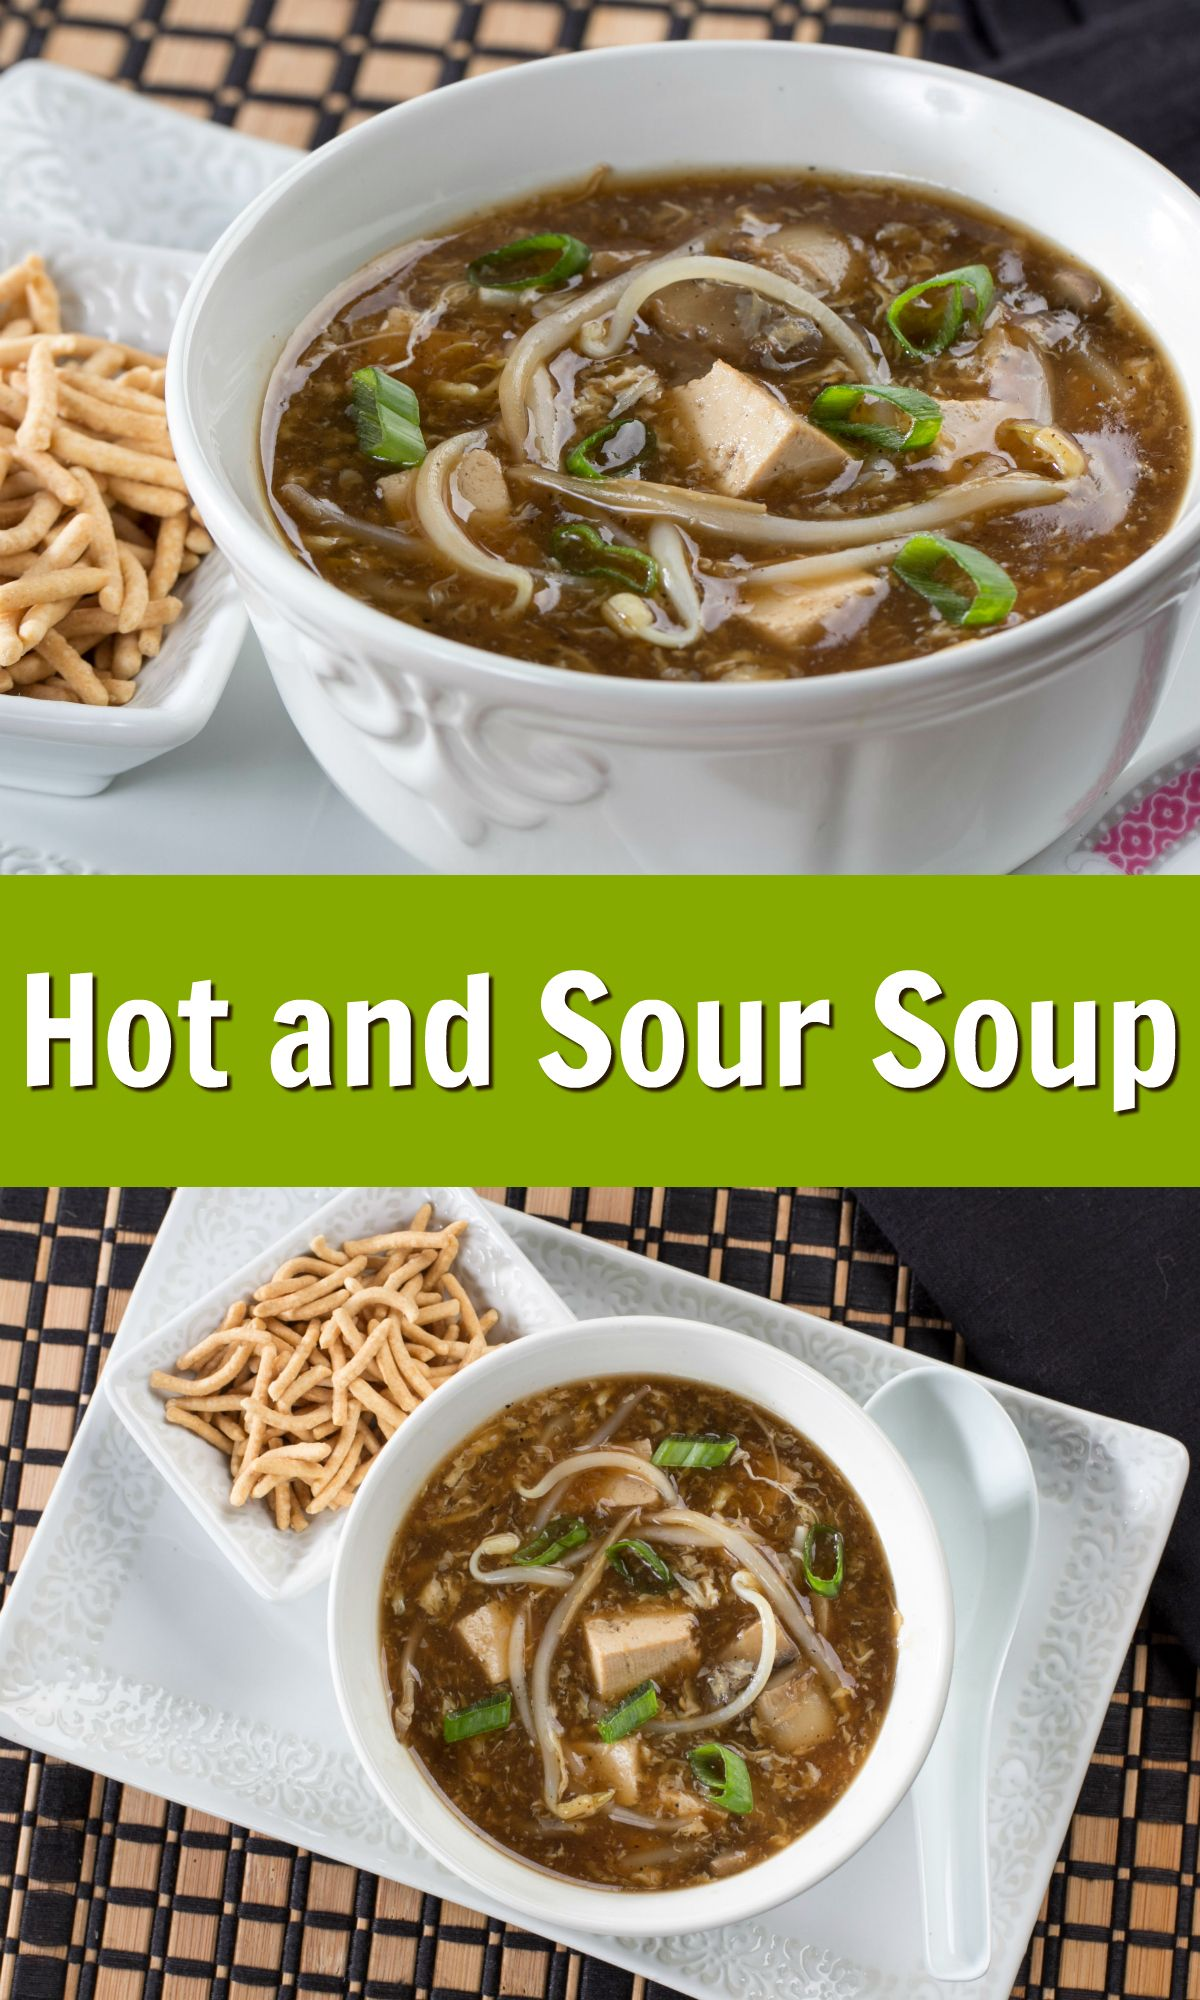 Hot and sour soup sour soup chinese restaurant and restaurants dishes forumfinder Images